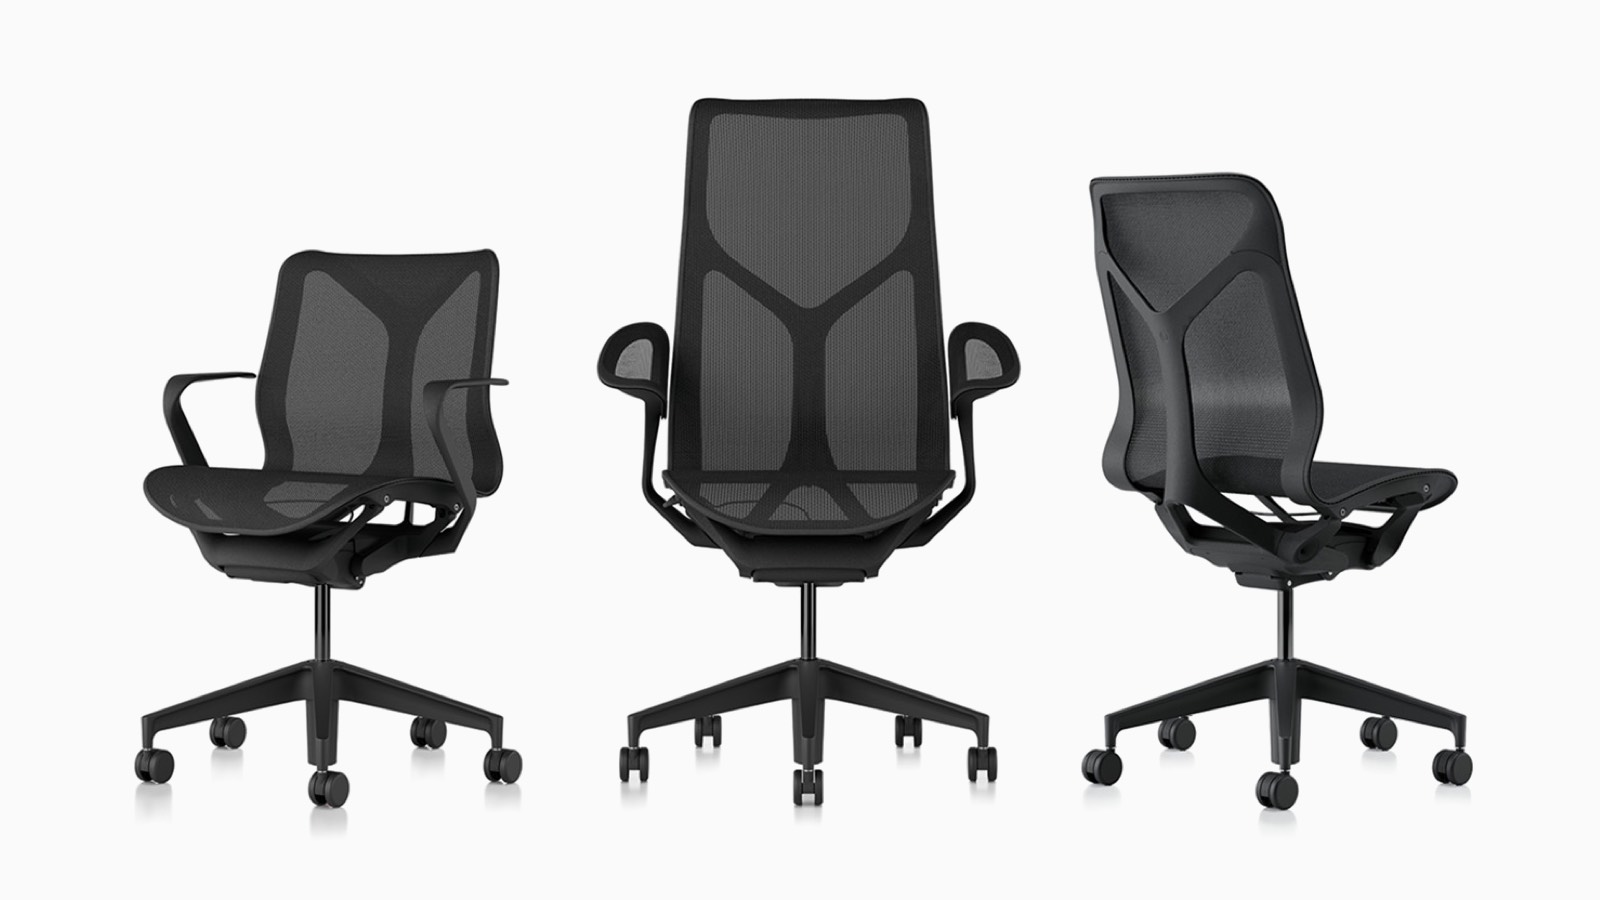 Low-back, high-back, and mid-back Cosm ergonomic desk chairs with suspension materials, bases, and frames in Graphite dark grey.